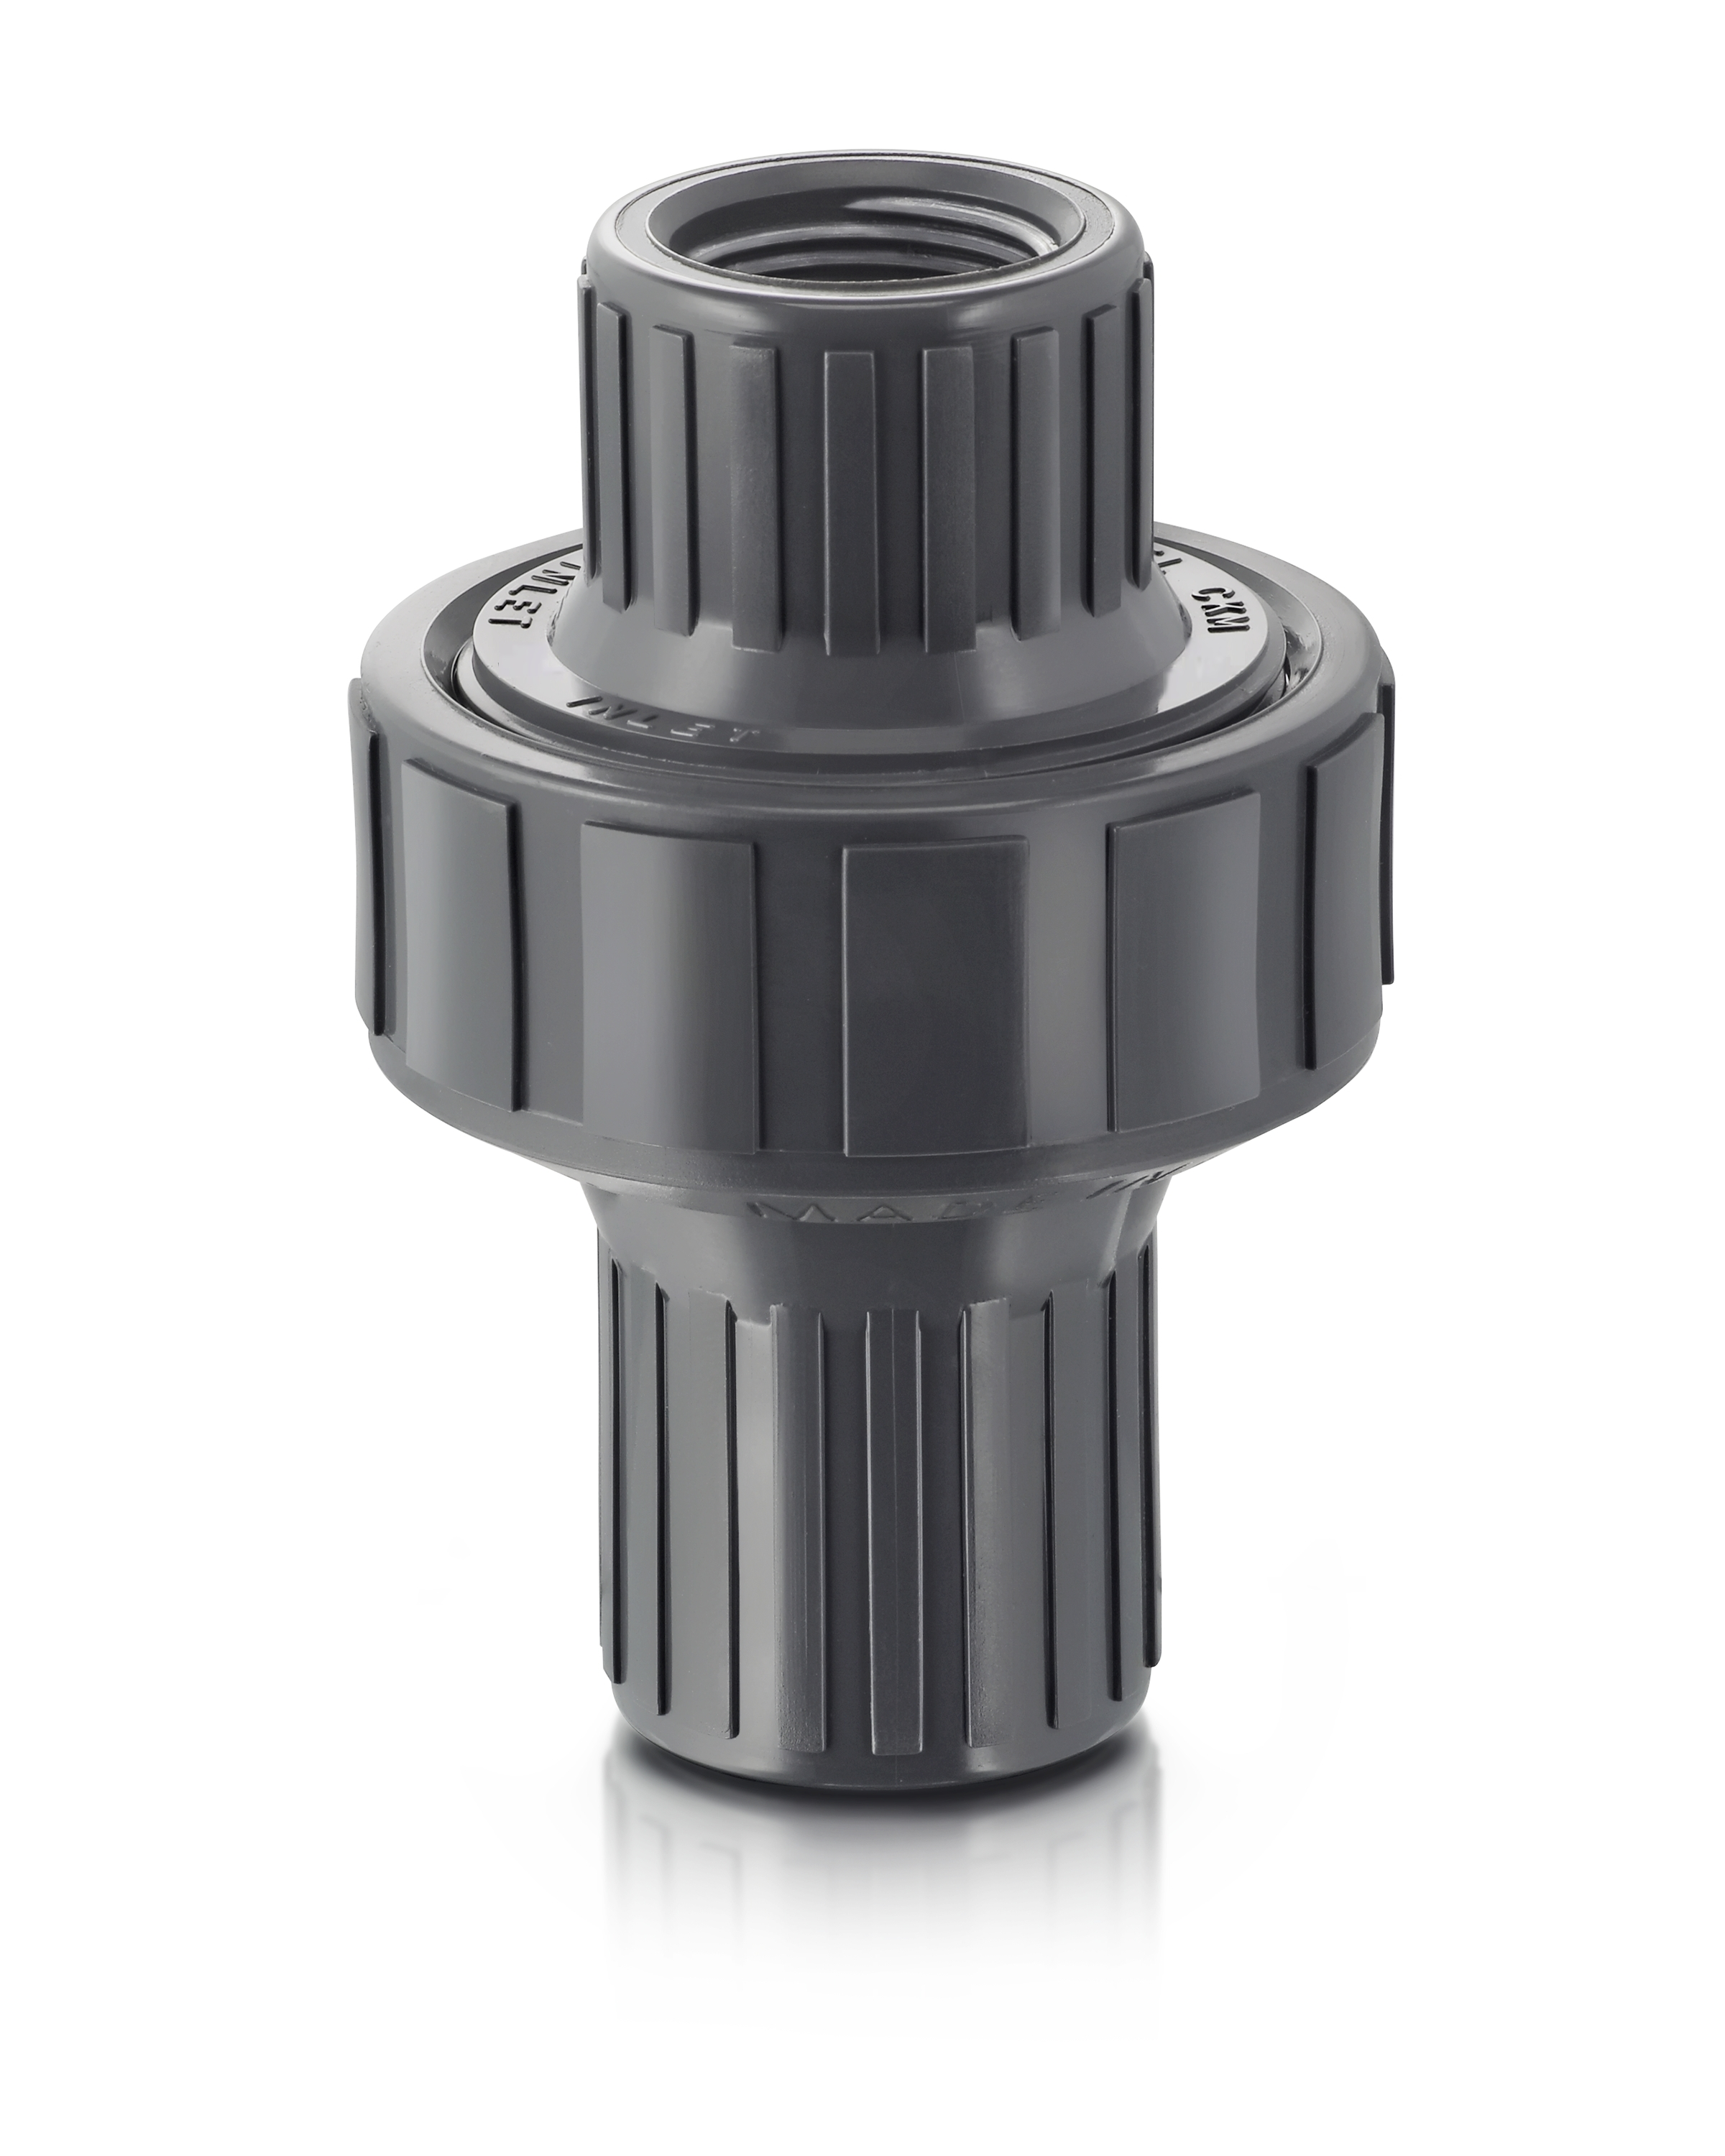 Plast-O-Matic CKM Diaphragm Check Valves